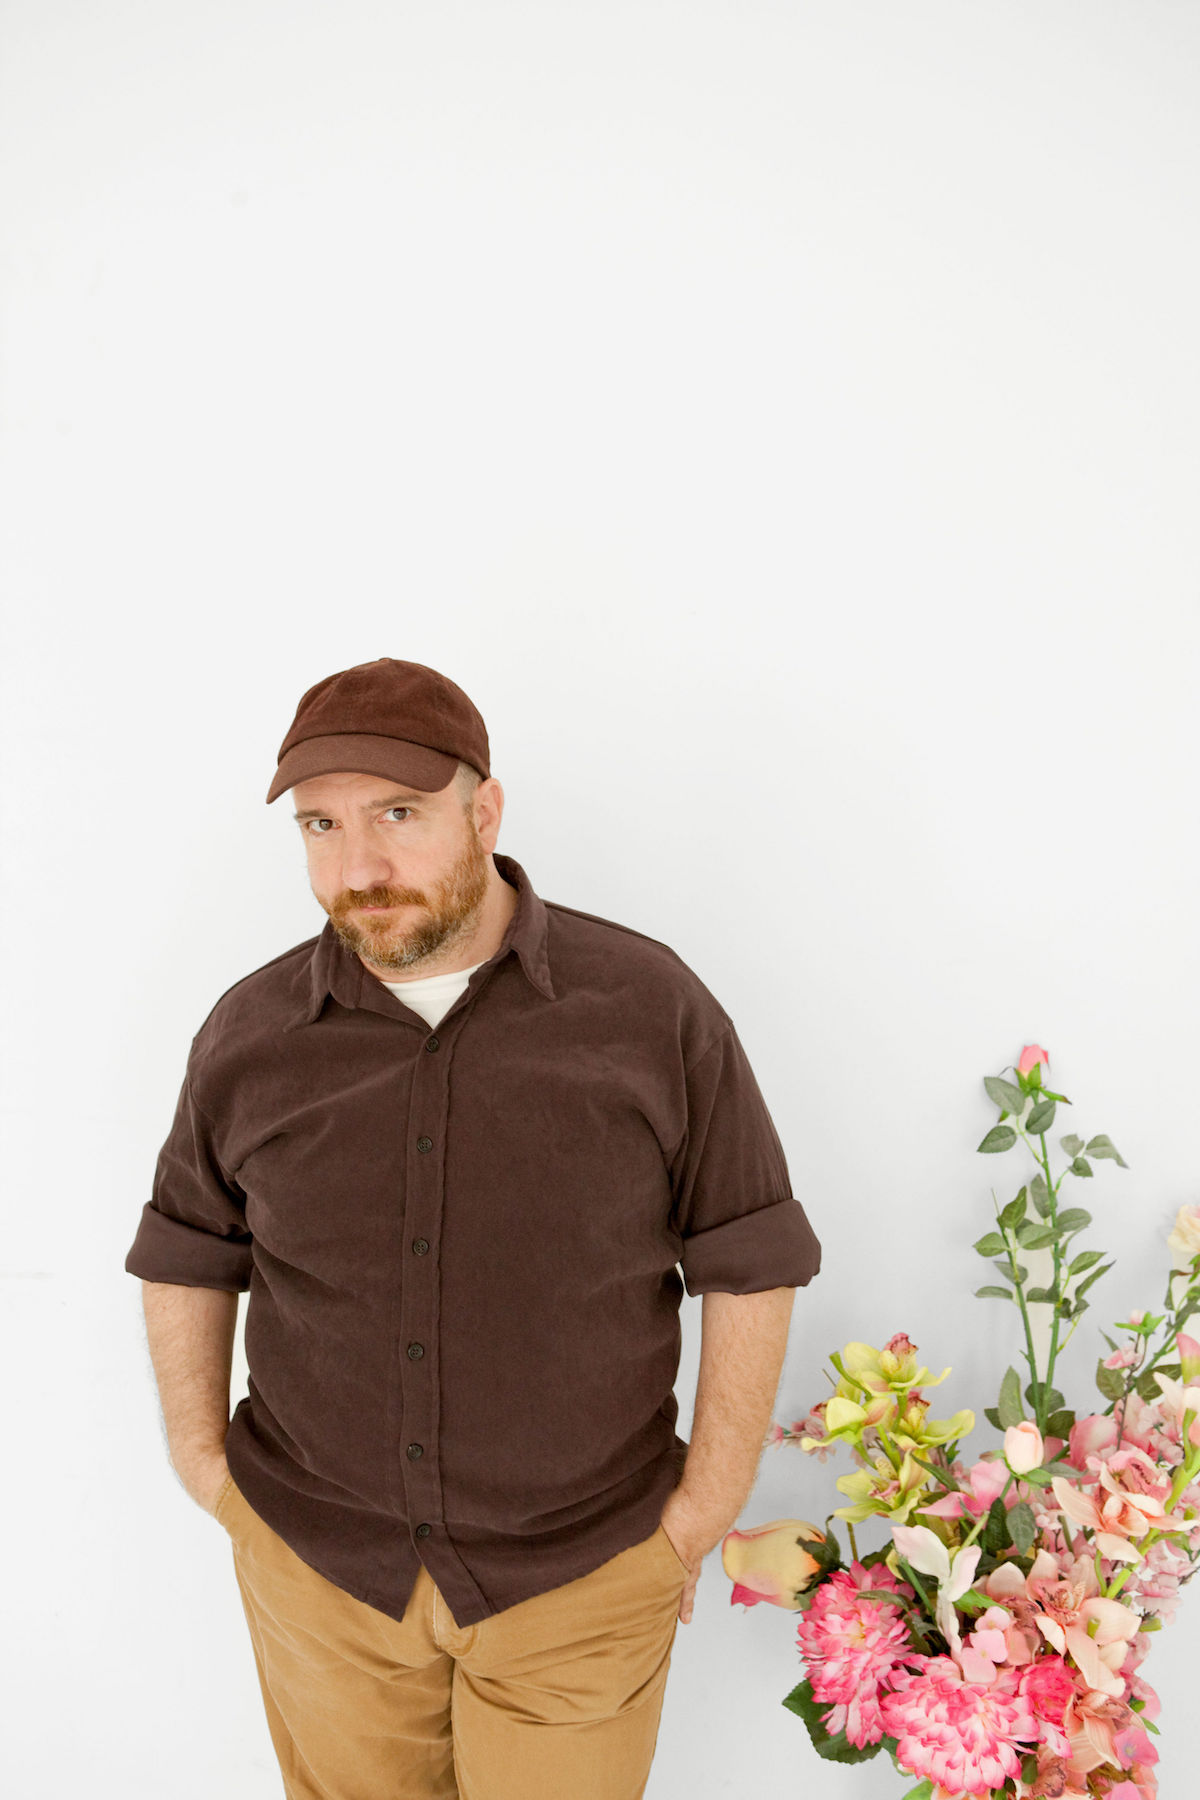 Stephin Merritt/The Magnetic Fields (Credit Marcelo Krasilcic)